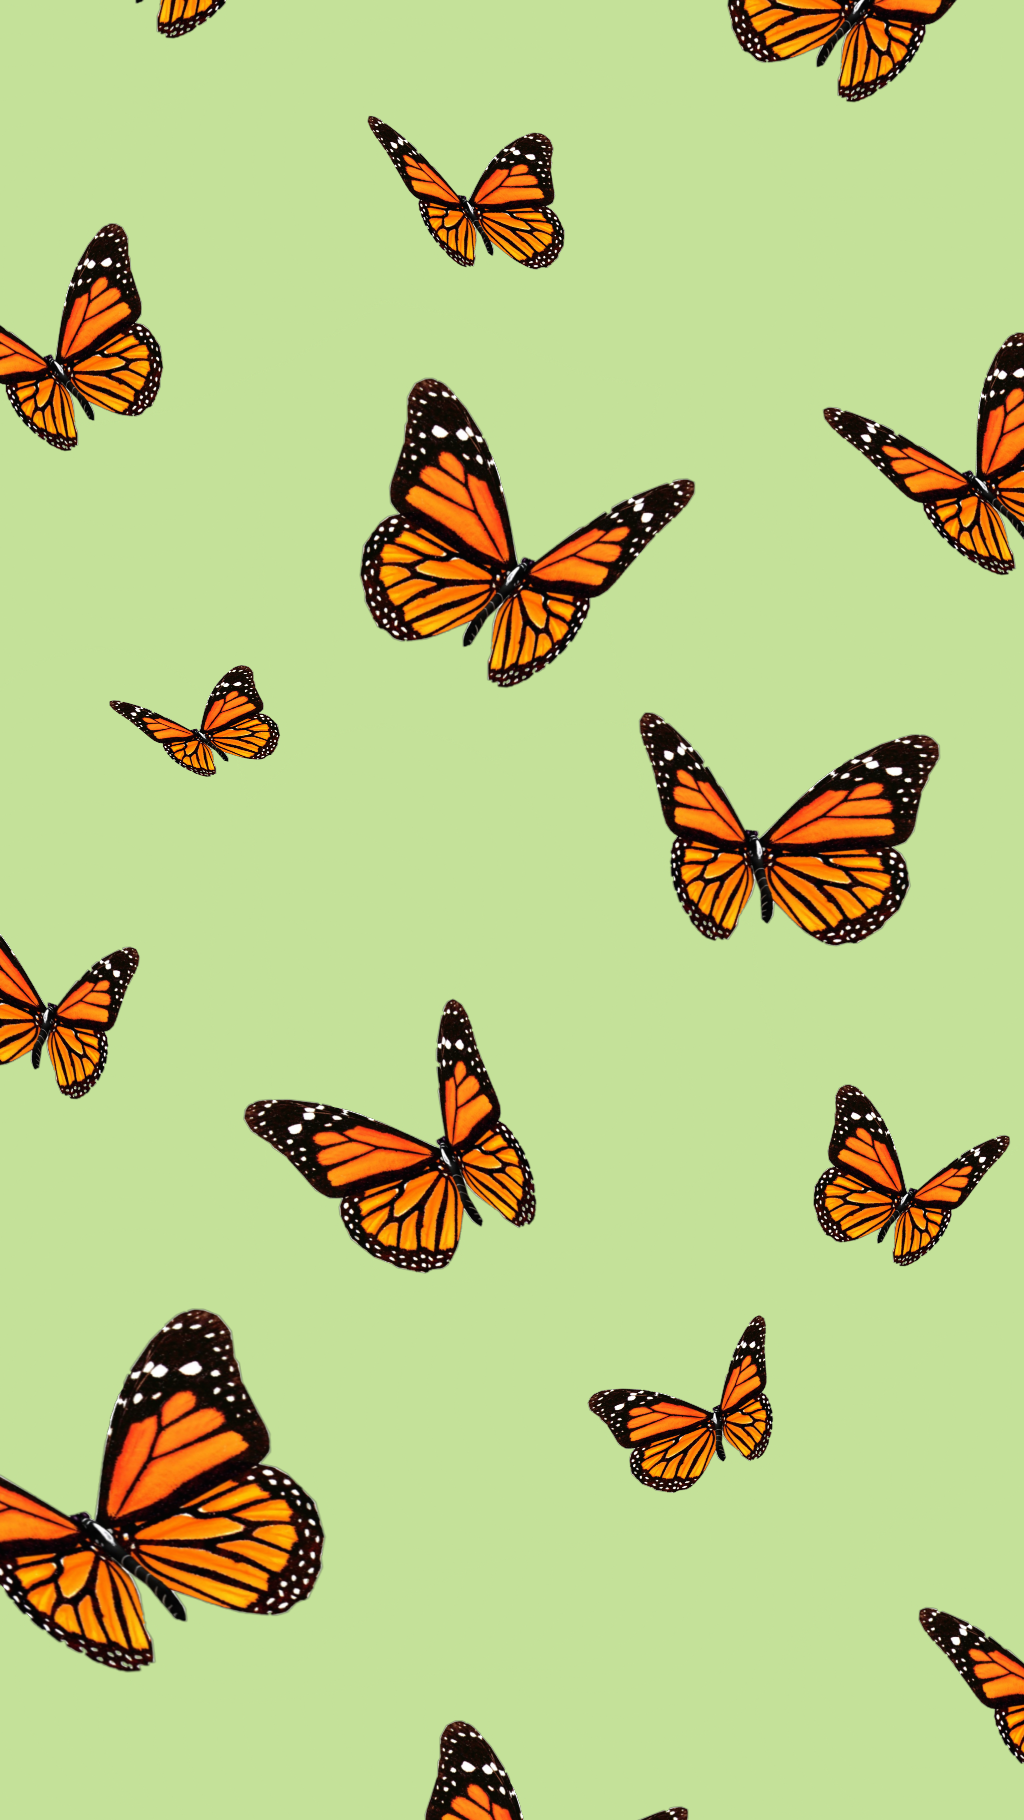 Butterfly Iphone Wallpaper Aesthetic In 2020 With Images Butterfly Wallpaper Iphone Butterfly Wallpaper Aesthetic Desktop Wallpaper